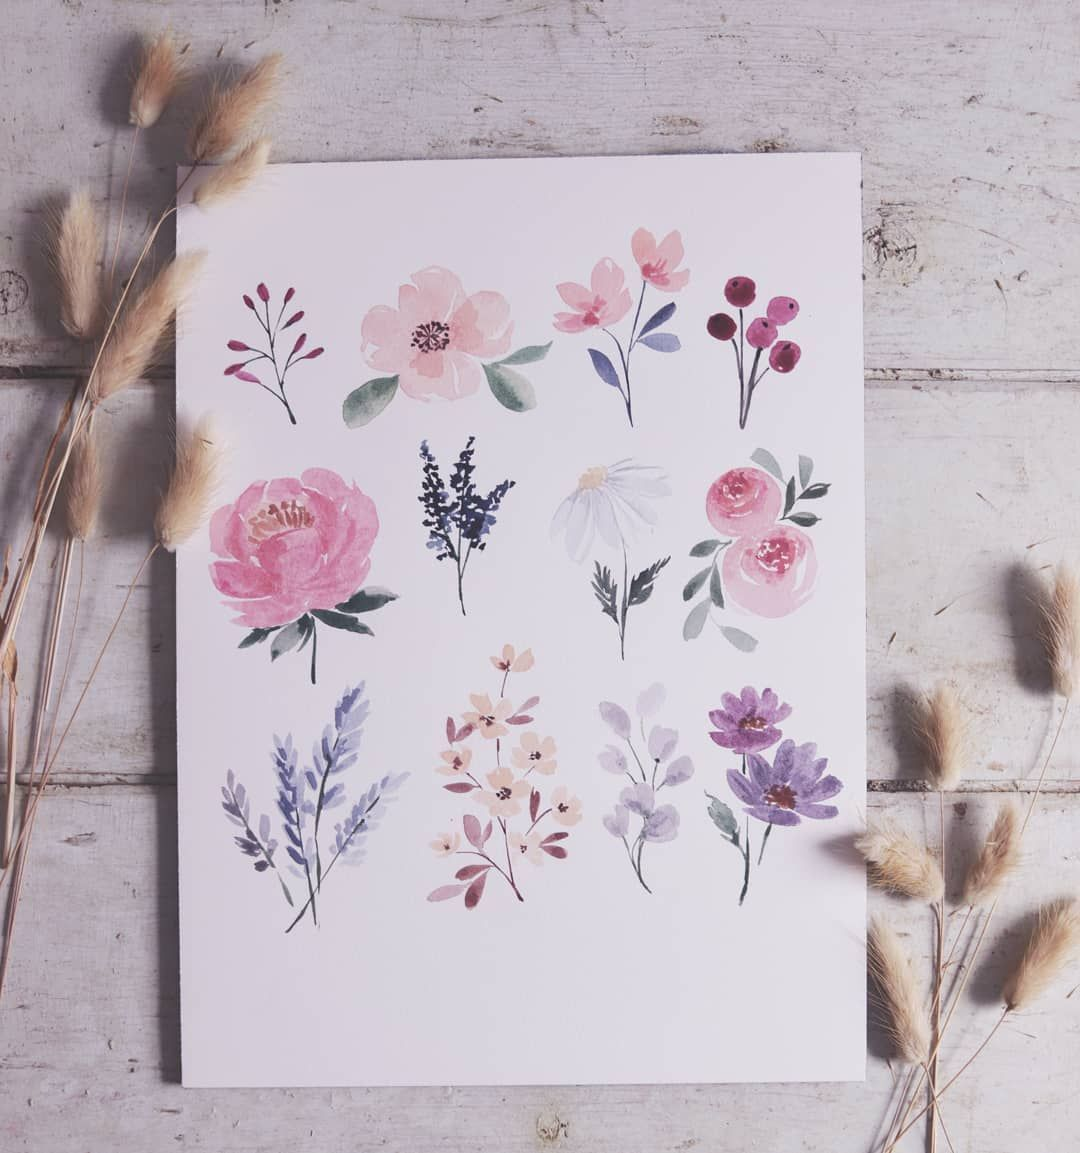 """Photo of Shayda Campbell on Instagram: """"It's time !! My video """"Every watercolor flower you will ever need"""" is now available! 🌺🌼🌹 Go to my channel and watch it! I'm super proud of … """""""